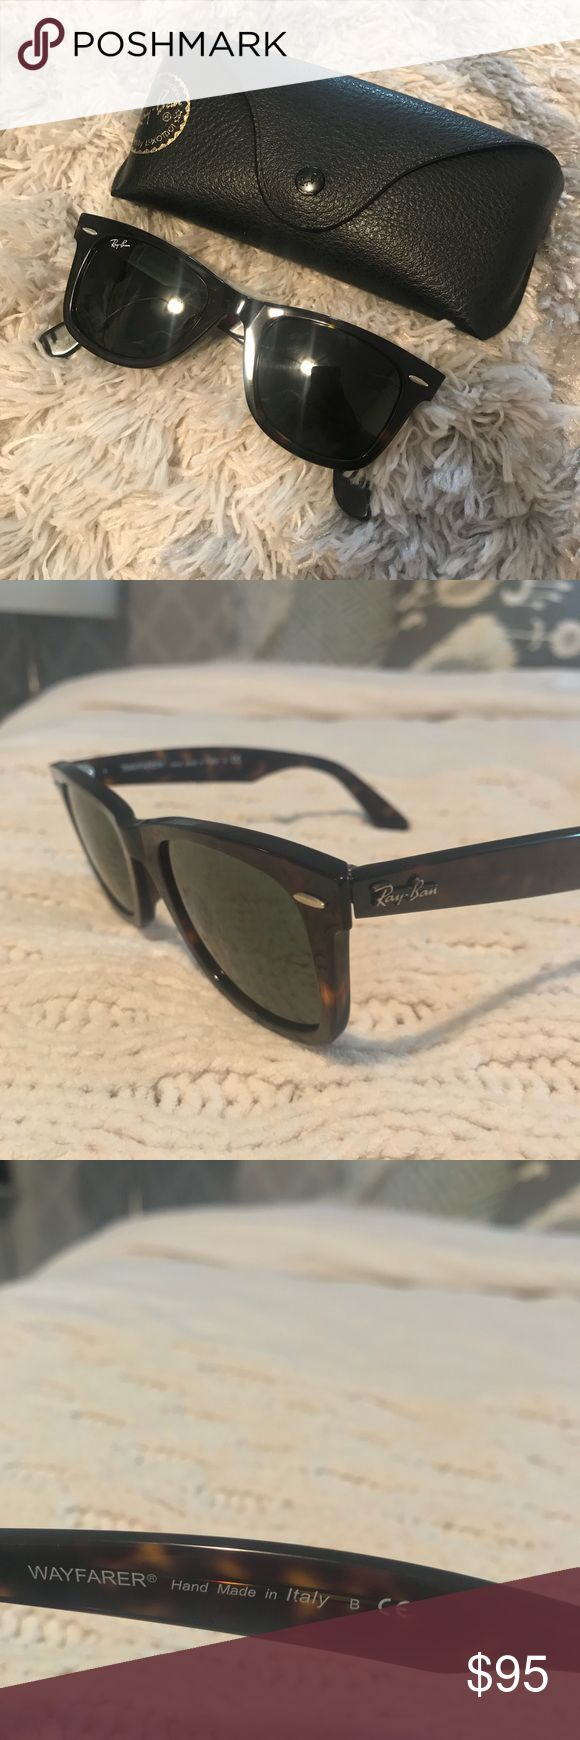 Ray-Ban Wayfarer Ray-Ban tortoise shell Wayfarer sunnies. In perfect condition. Only worn a few times. Ray-Ban Accessories Sunglasses